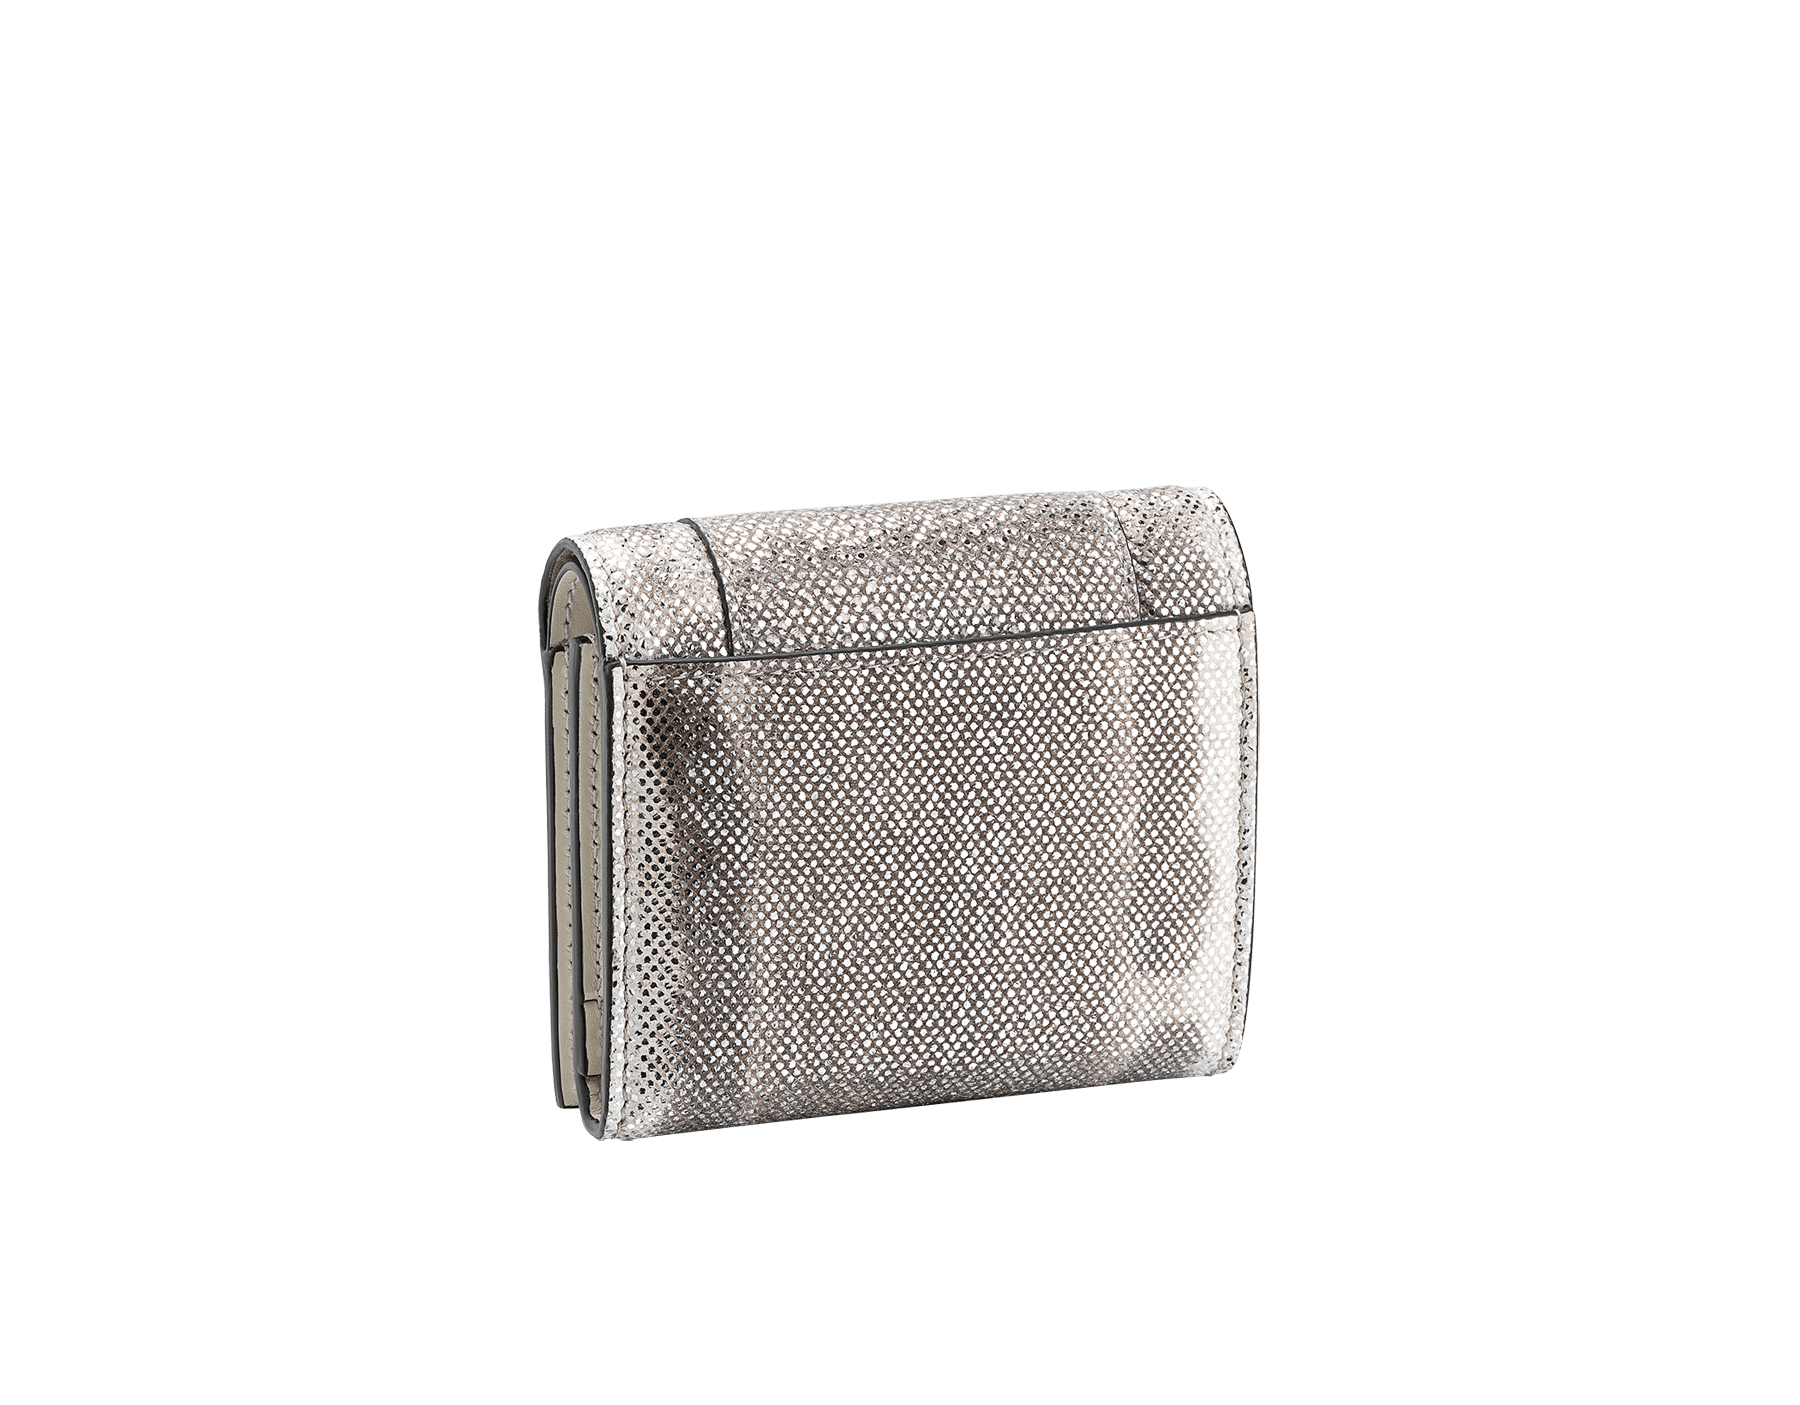 Serpenti Forever super compact wallet in milky opal metallic karung skin and milky opal calf leather. Iconic snakehead stud closure in black and glitter milky opal enamel, with black enamel eyes. SEA-SUPERCOMPACT-MK image 4